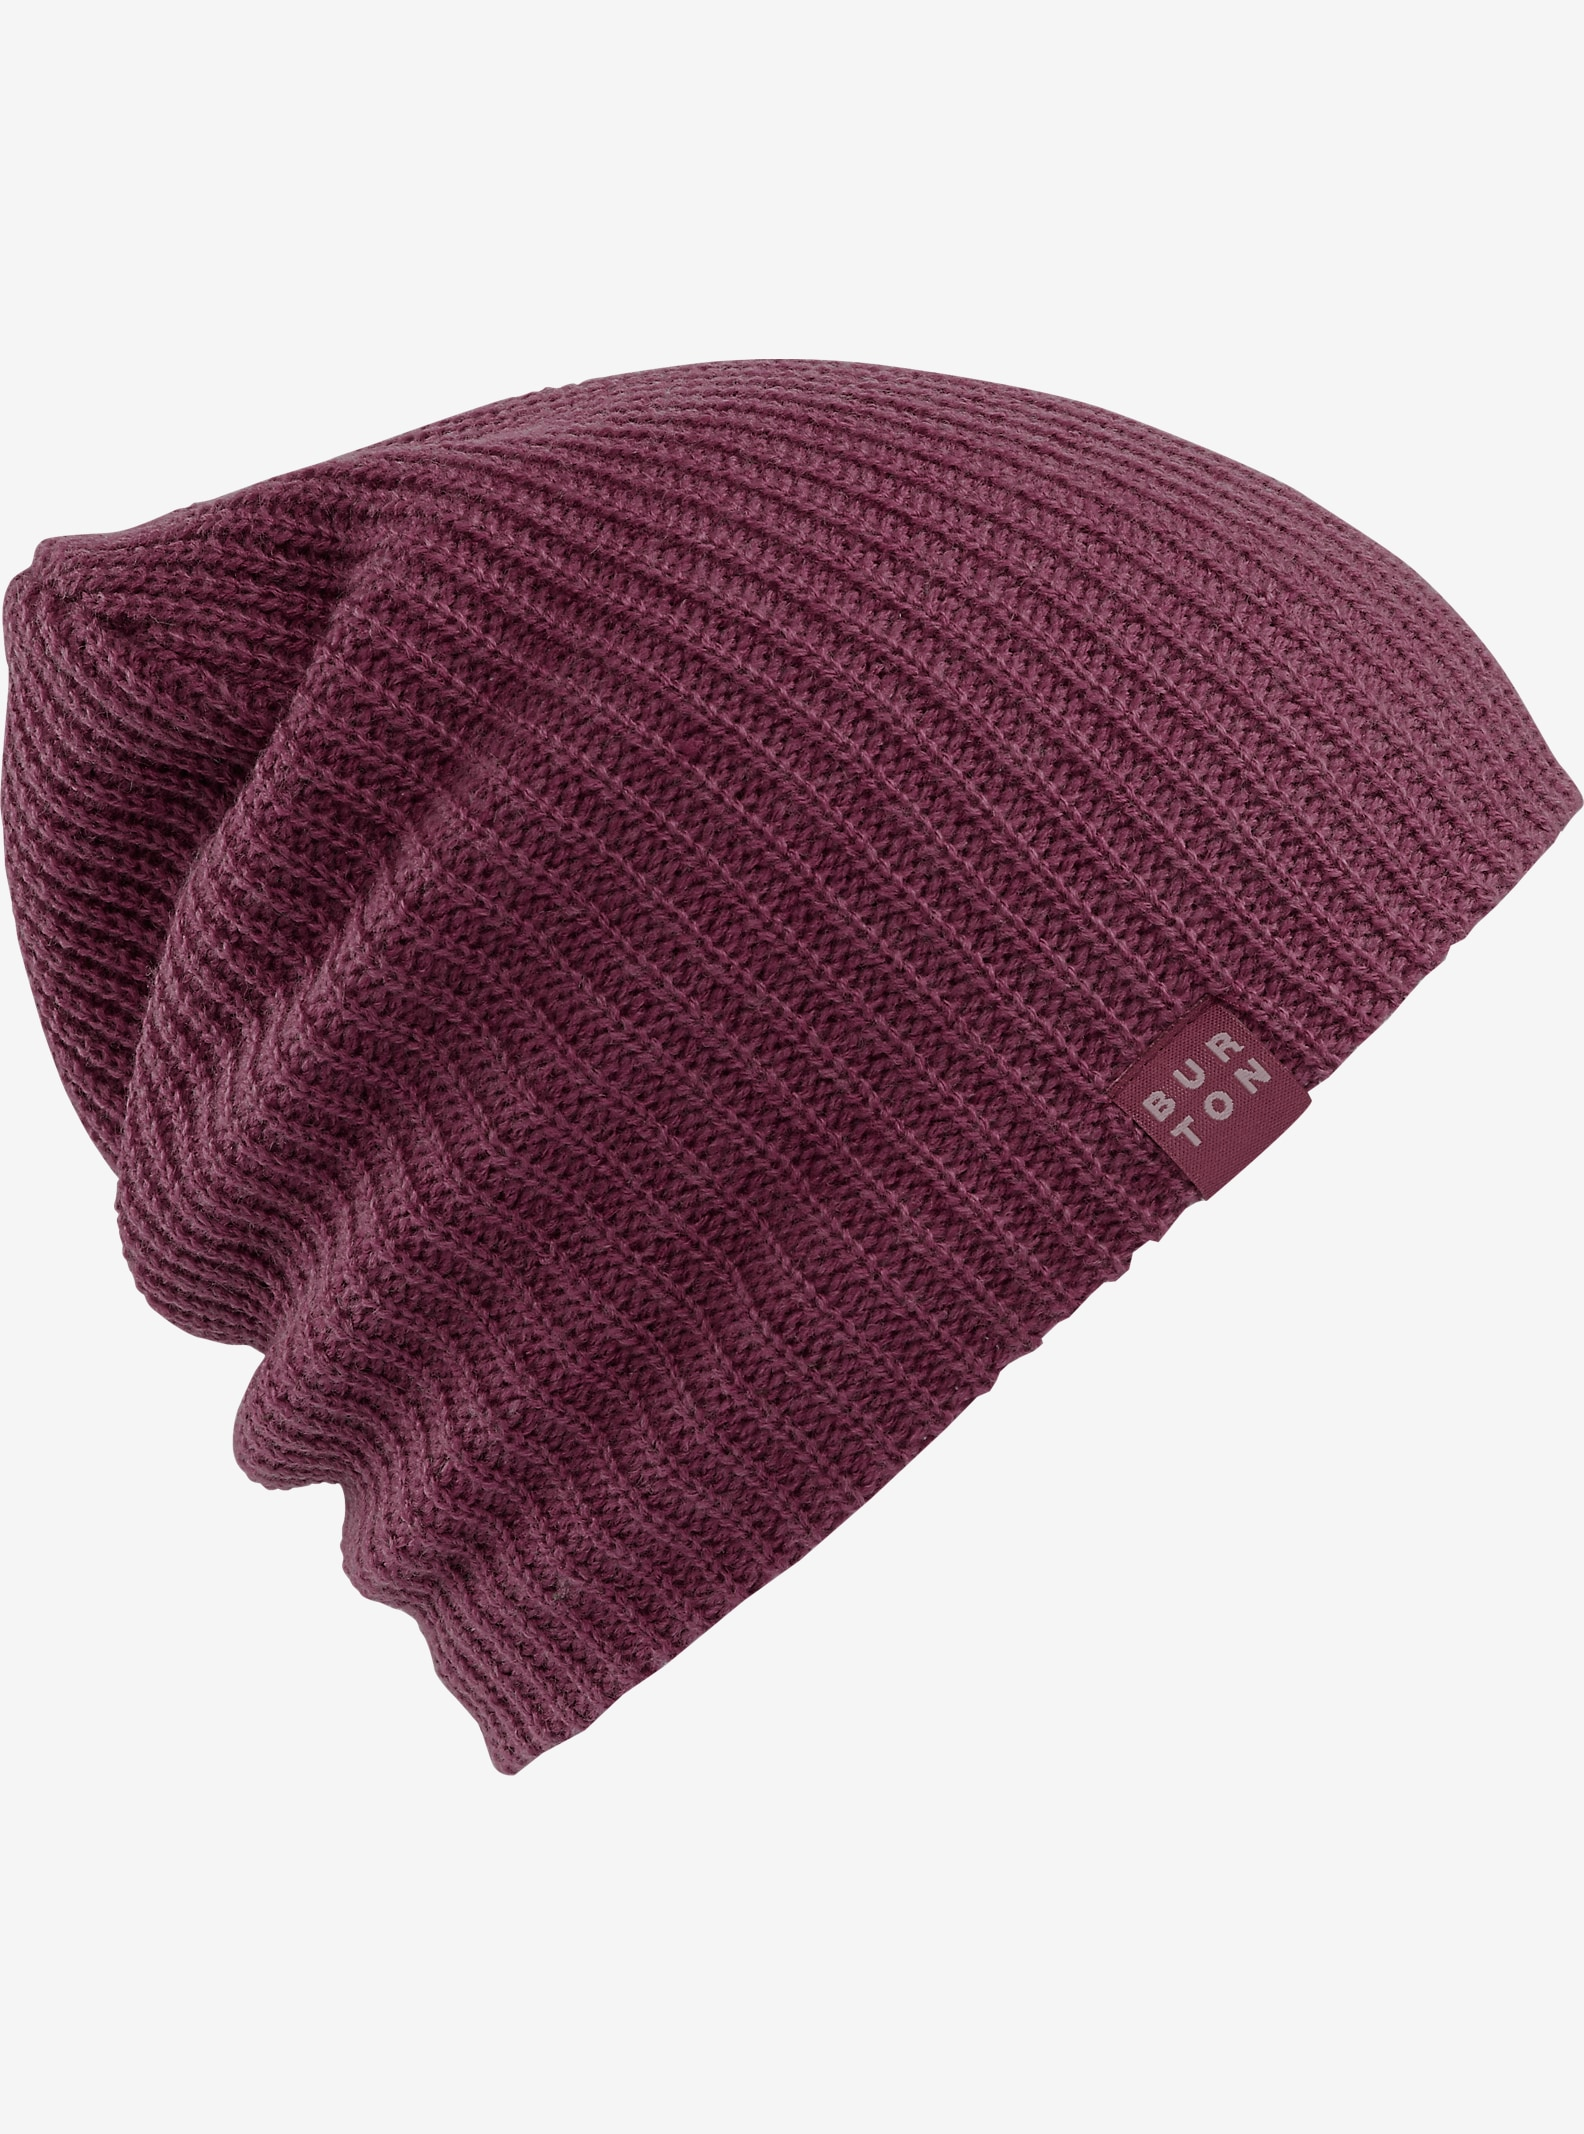 Burton All Day Long Beanie shown in Wino